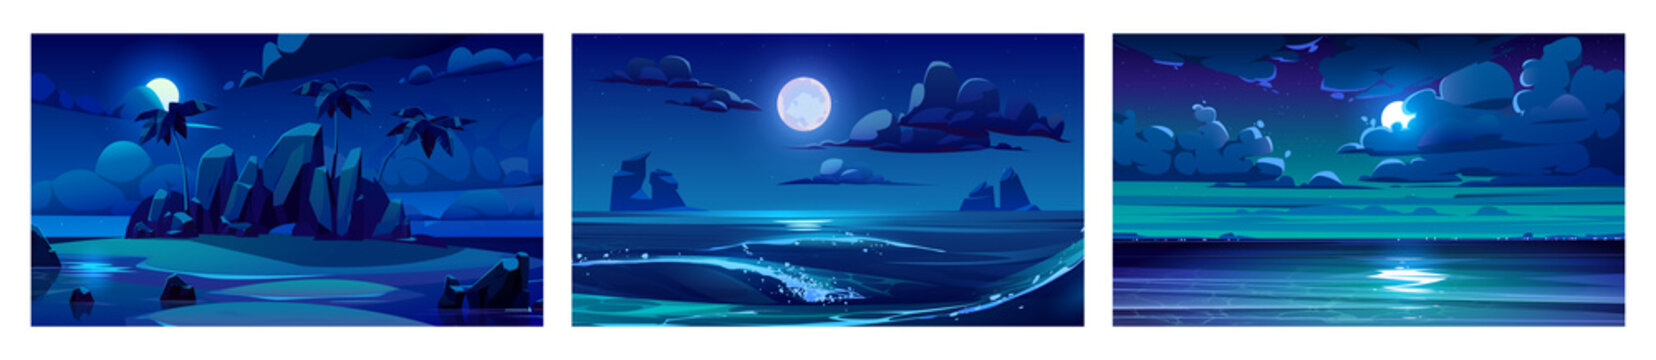 Sea landscape with moon, stars and clouds in dark sky at night. Vector cartoon backgrounds of seascape with tropical island with palm trees, sand beach, ocean waves and coastline on horizon